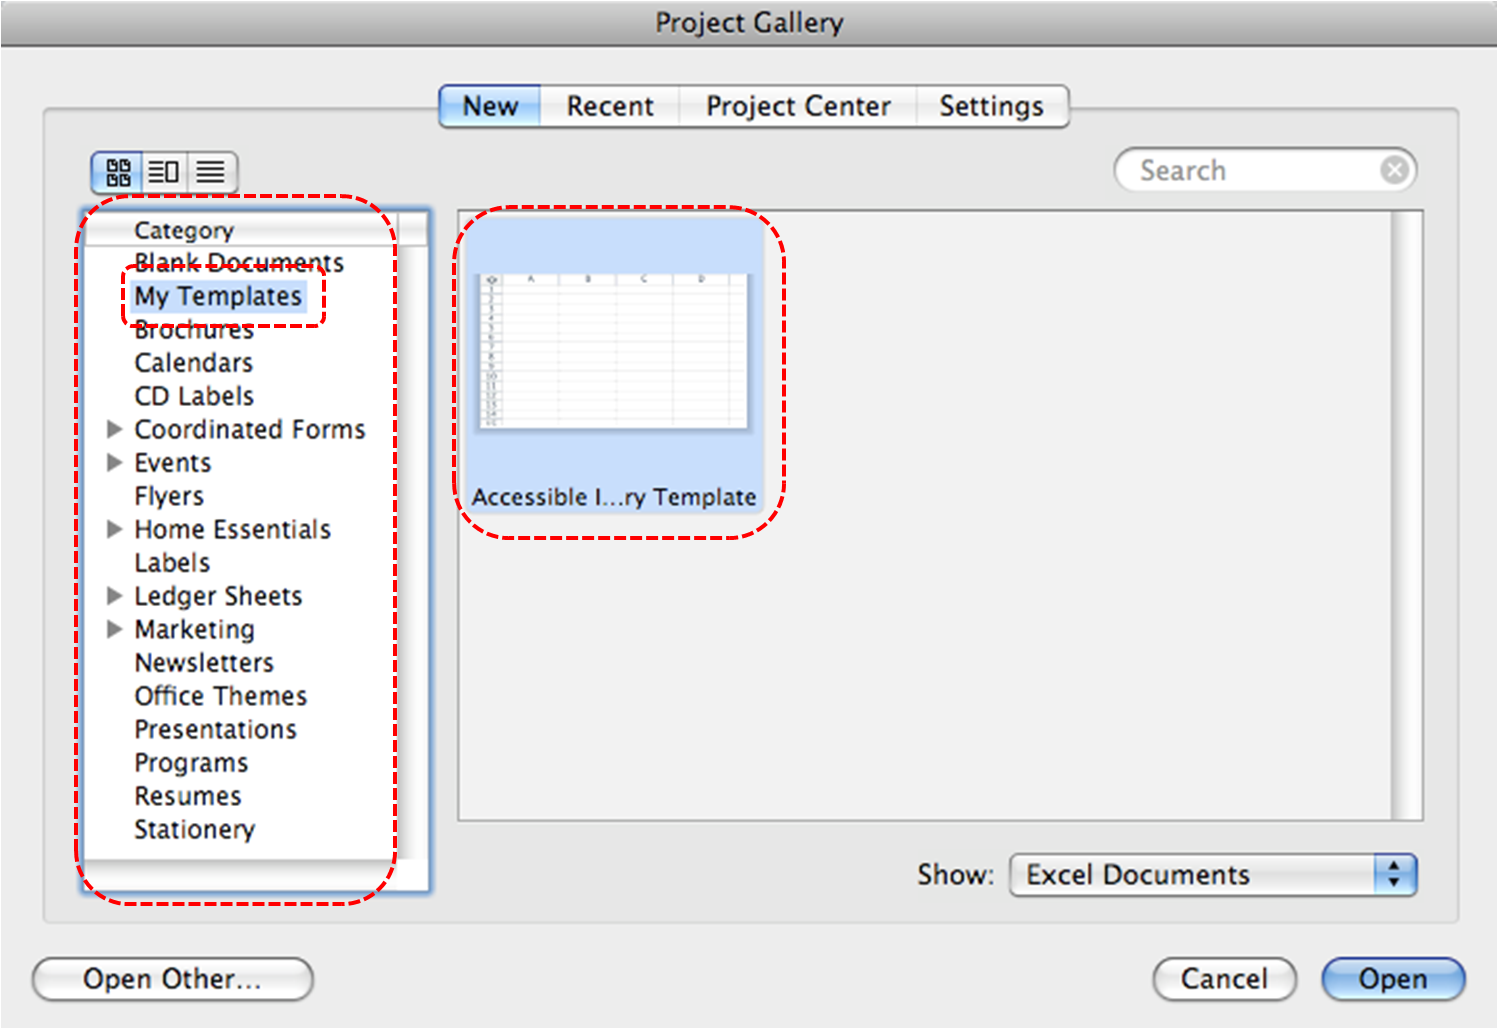 Image demonstrates location of My Templates option in Category section and an accessible template in the tempkate gallery of the Project Gallery dialog.